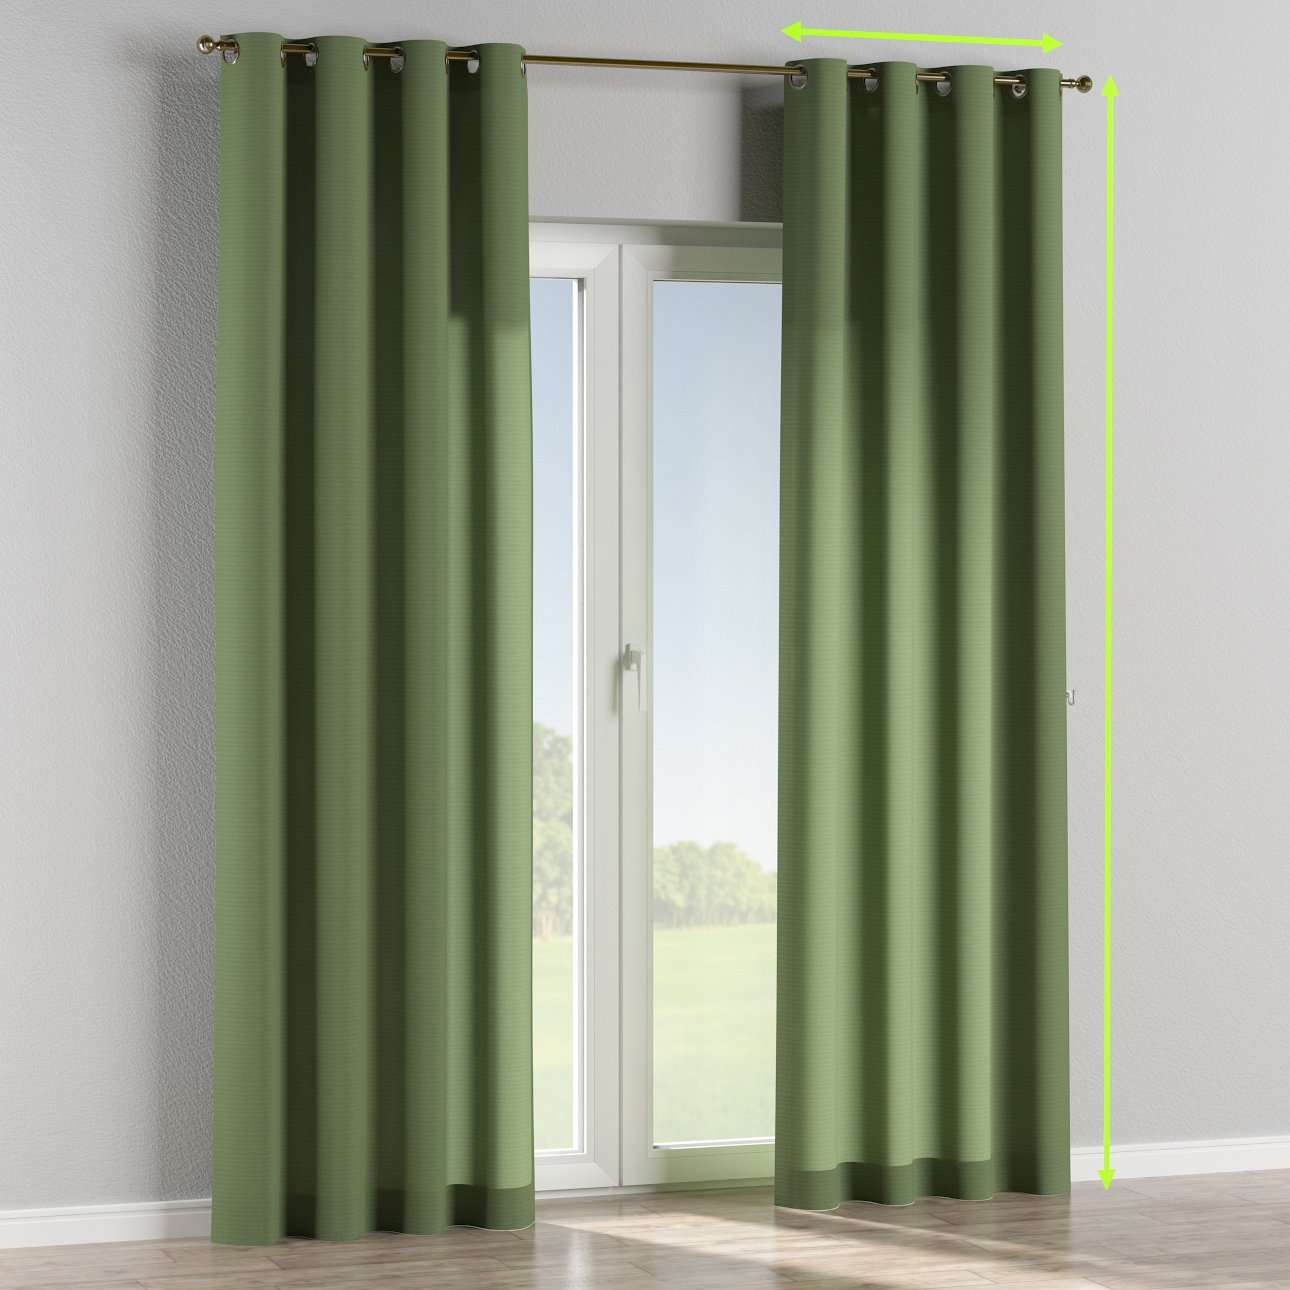 Eyelet lined curtains in collection Jupiter, fabric: 127-52